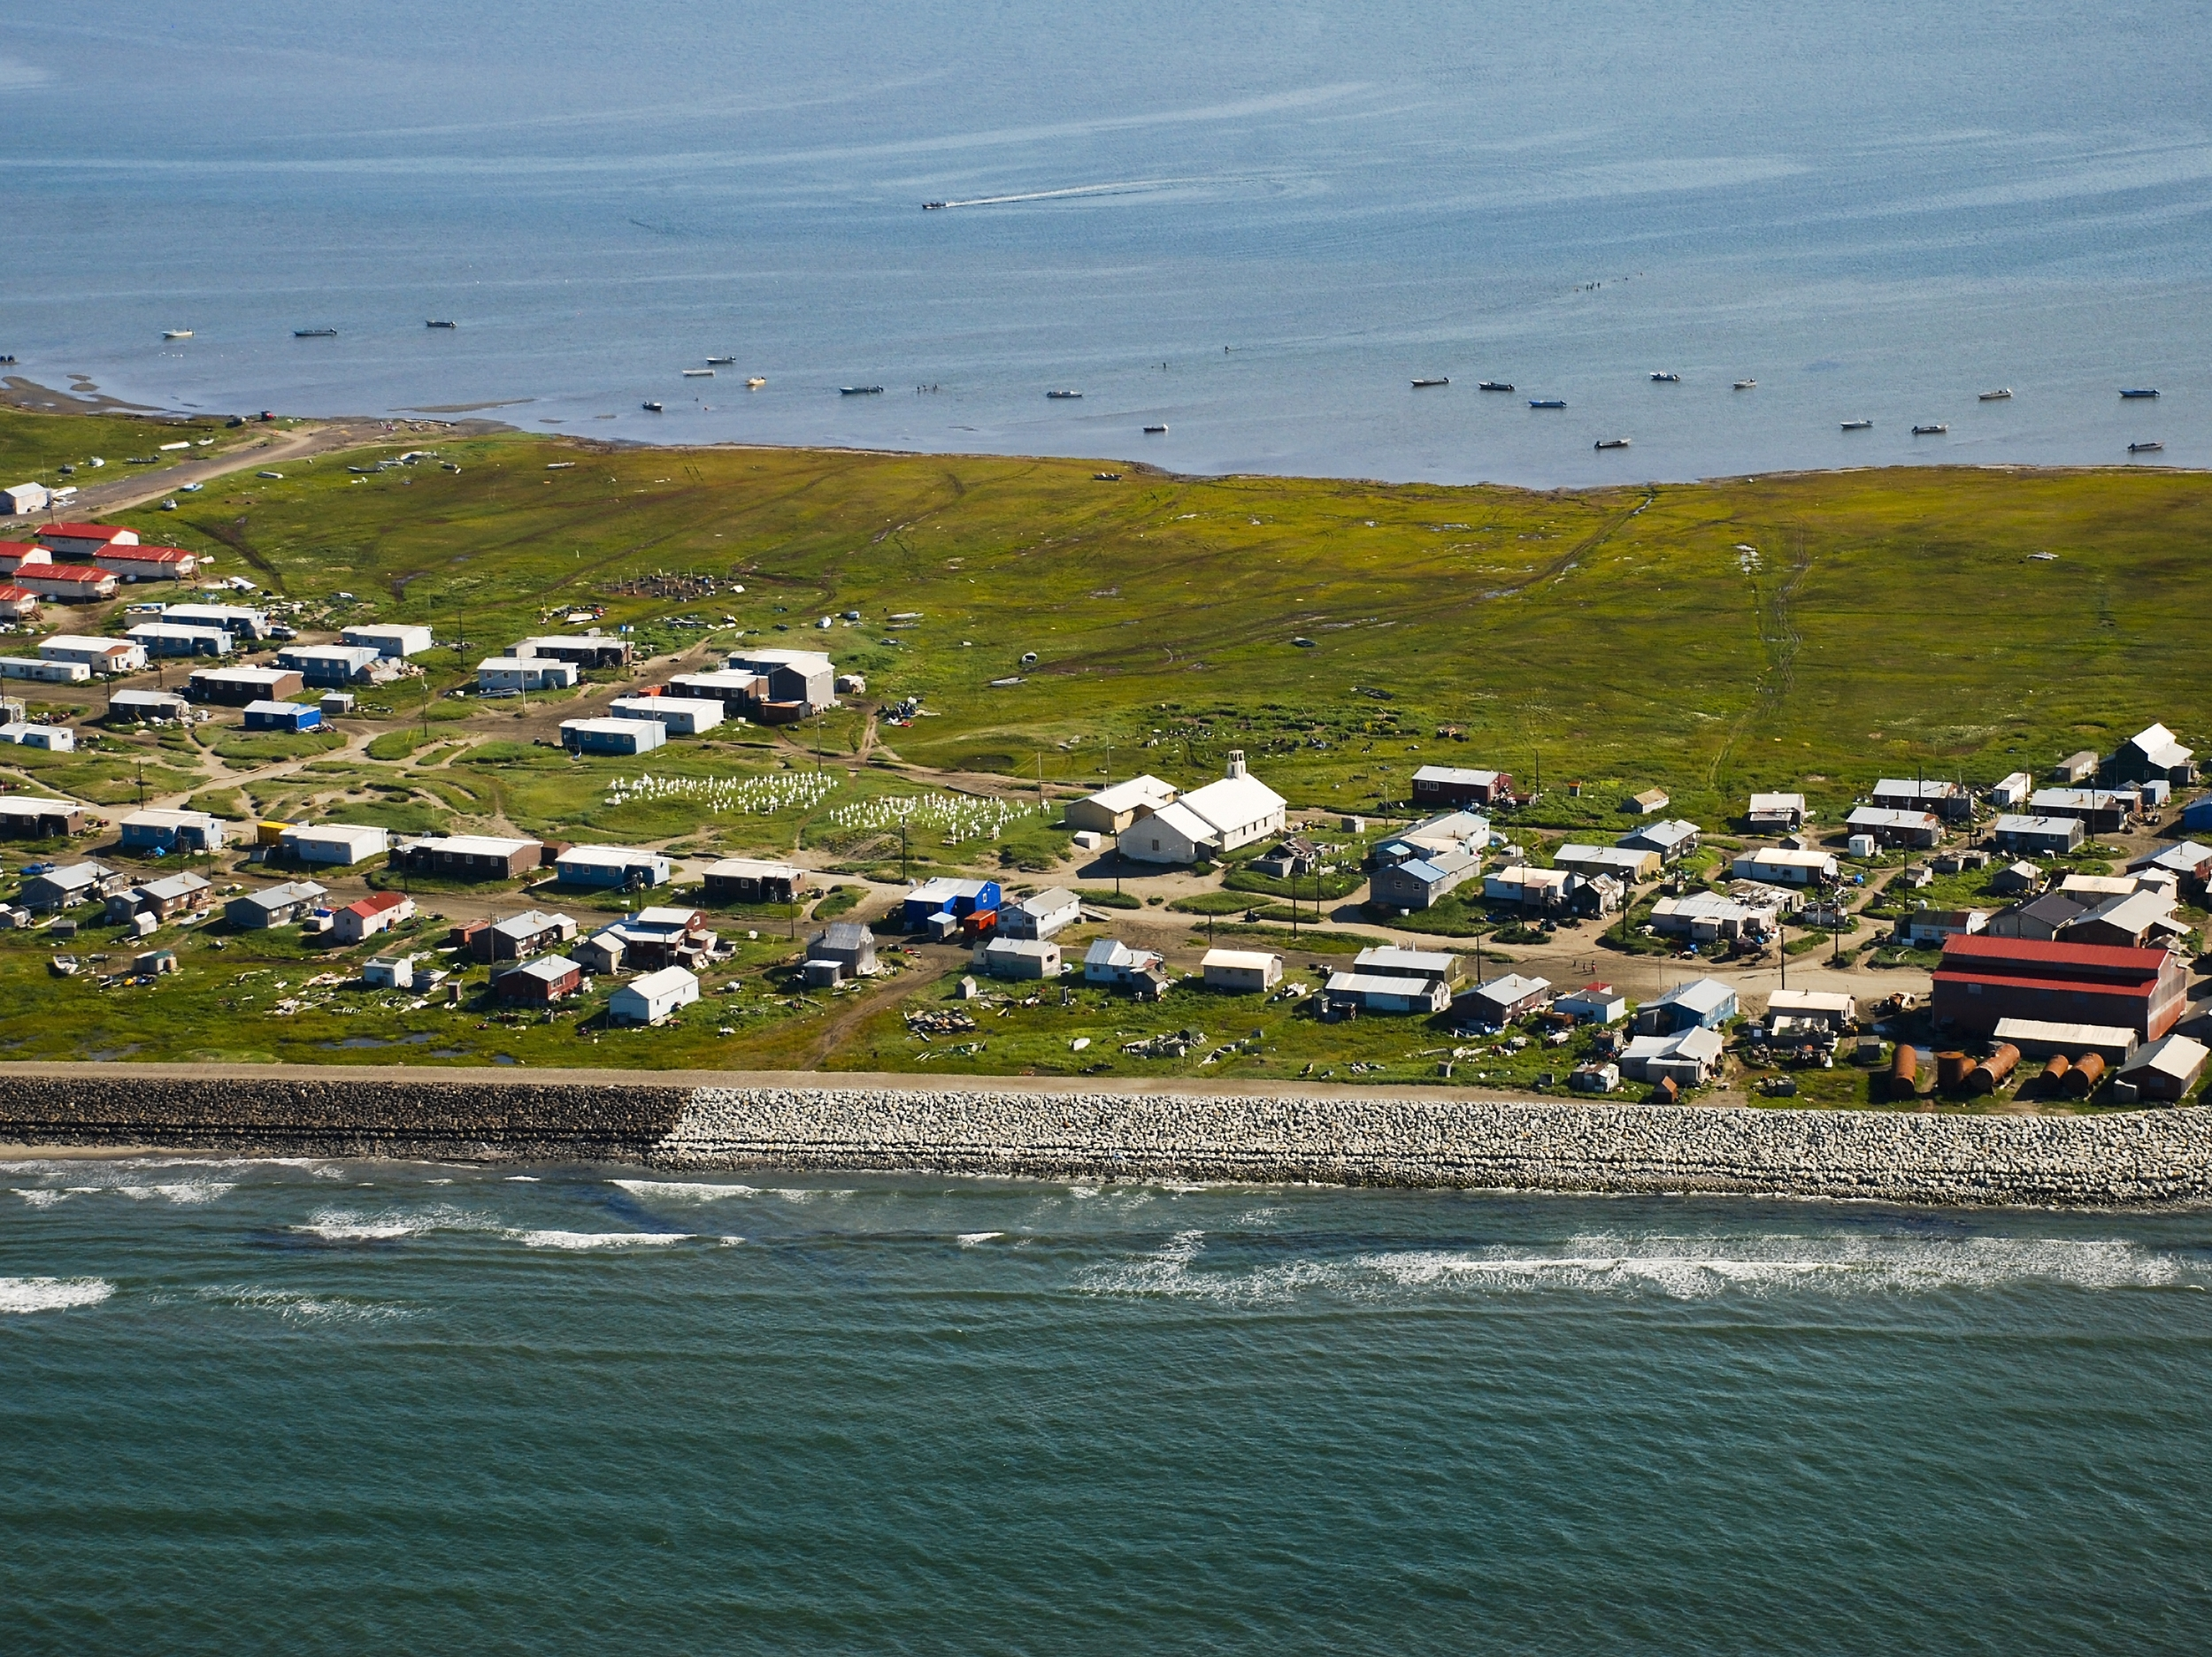 SHISHMAREF    is a traditional Inupiat Native mixed-subsistence village, in which residents combine cash incomes with living off the land and sea. It is located in the Bering Land Bridge Natural Preserve, and is home to around 550 people. It is also located off of the road system, and has a total area of 7.3 square miles, of which, 2.8 square miles is land and 4.5 square miles is water (according to the United States Census Bureau).